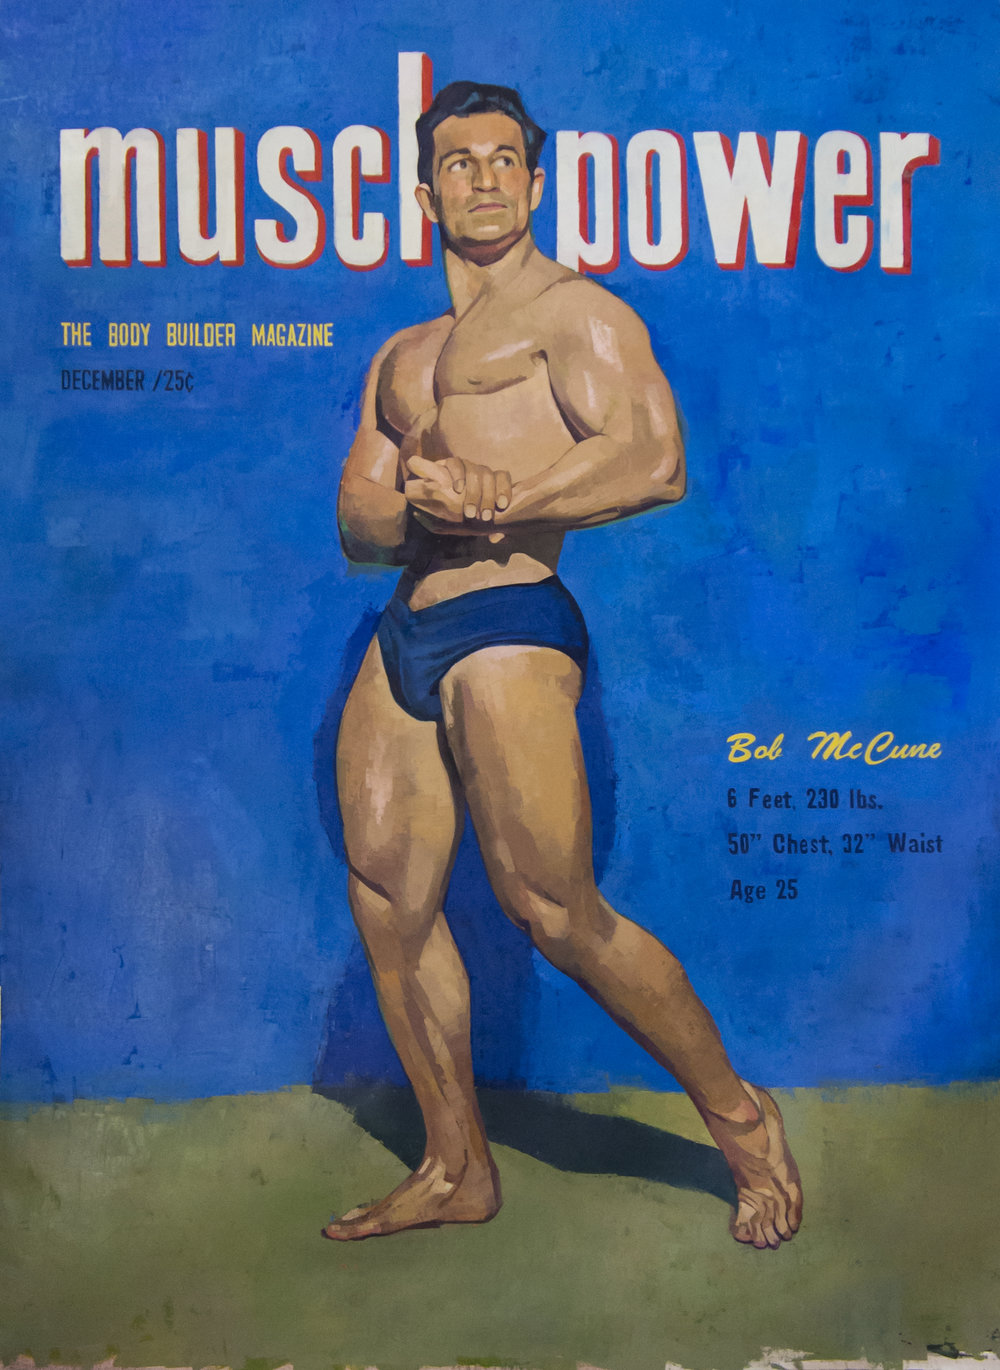 8-FISHER-Muscle-Power-1950.jpg